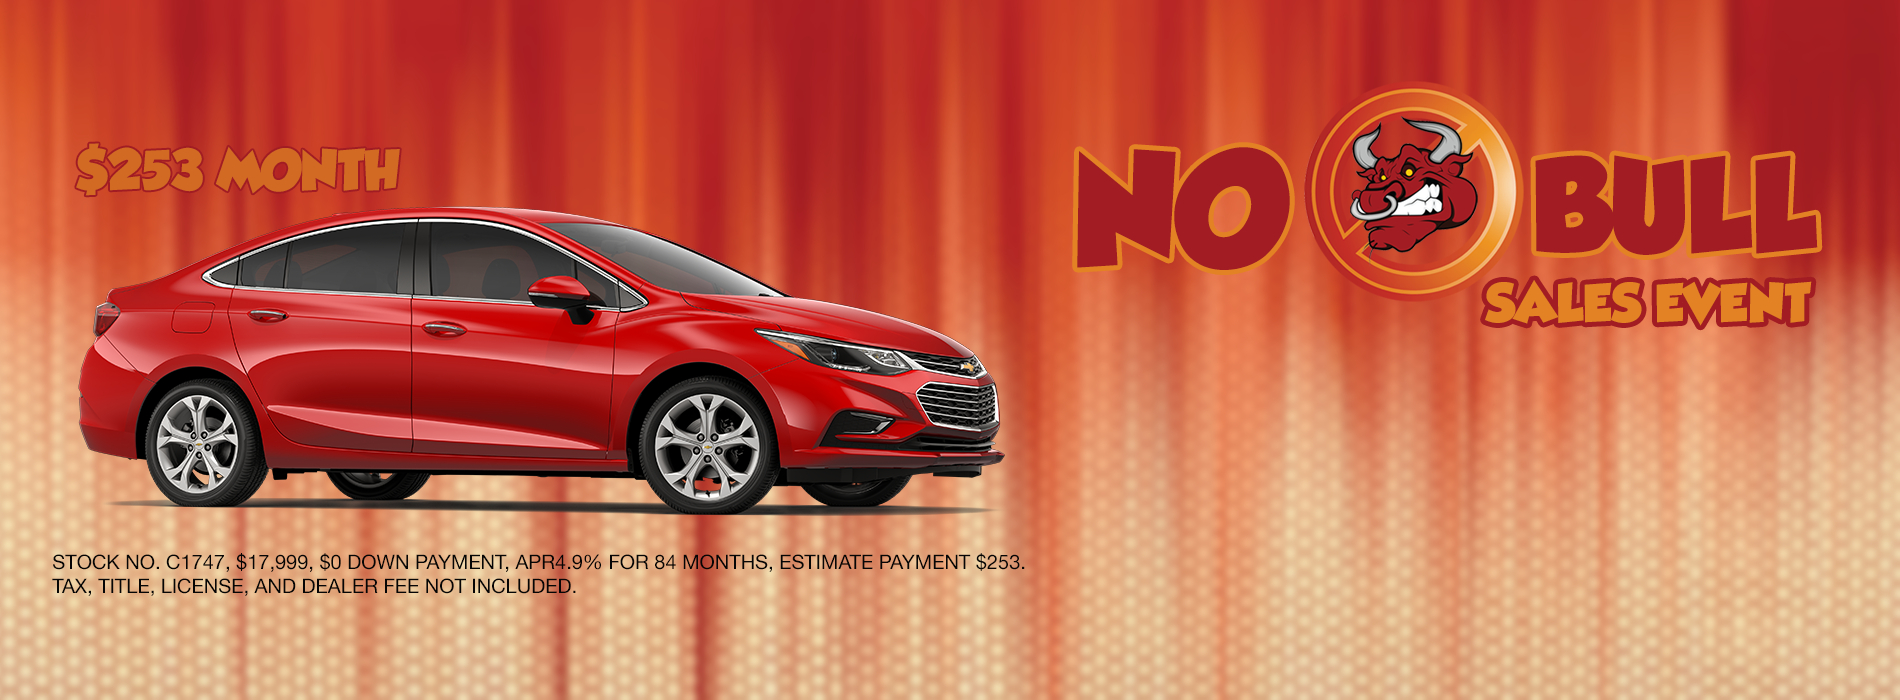 Cruze Payment August